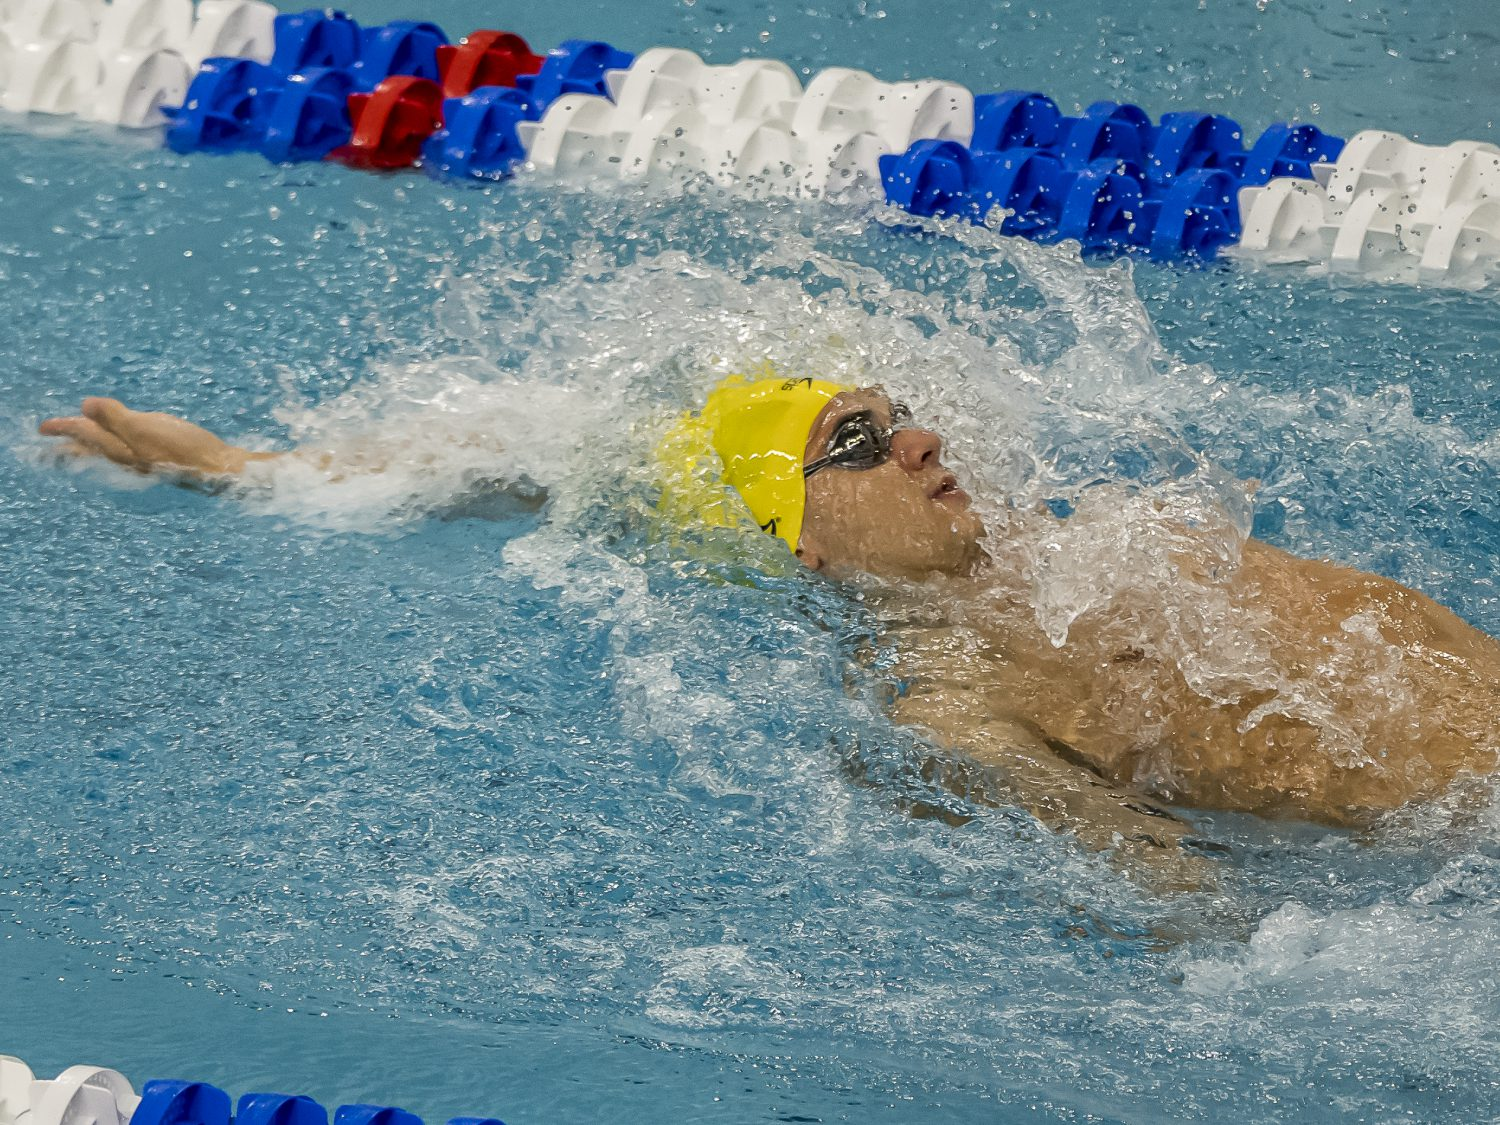 Cal's Reece Whitley Looks Sharp in 200 Breaststroke at Pac-12 Champs